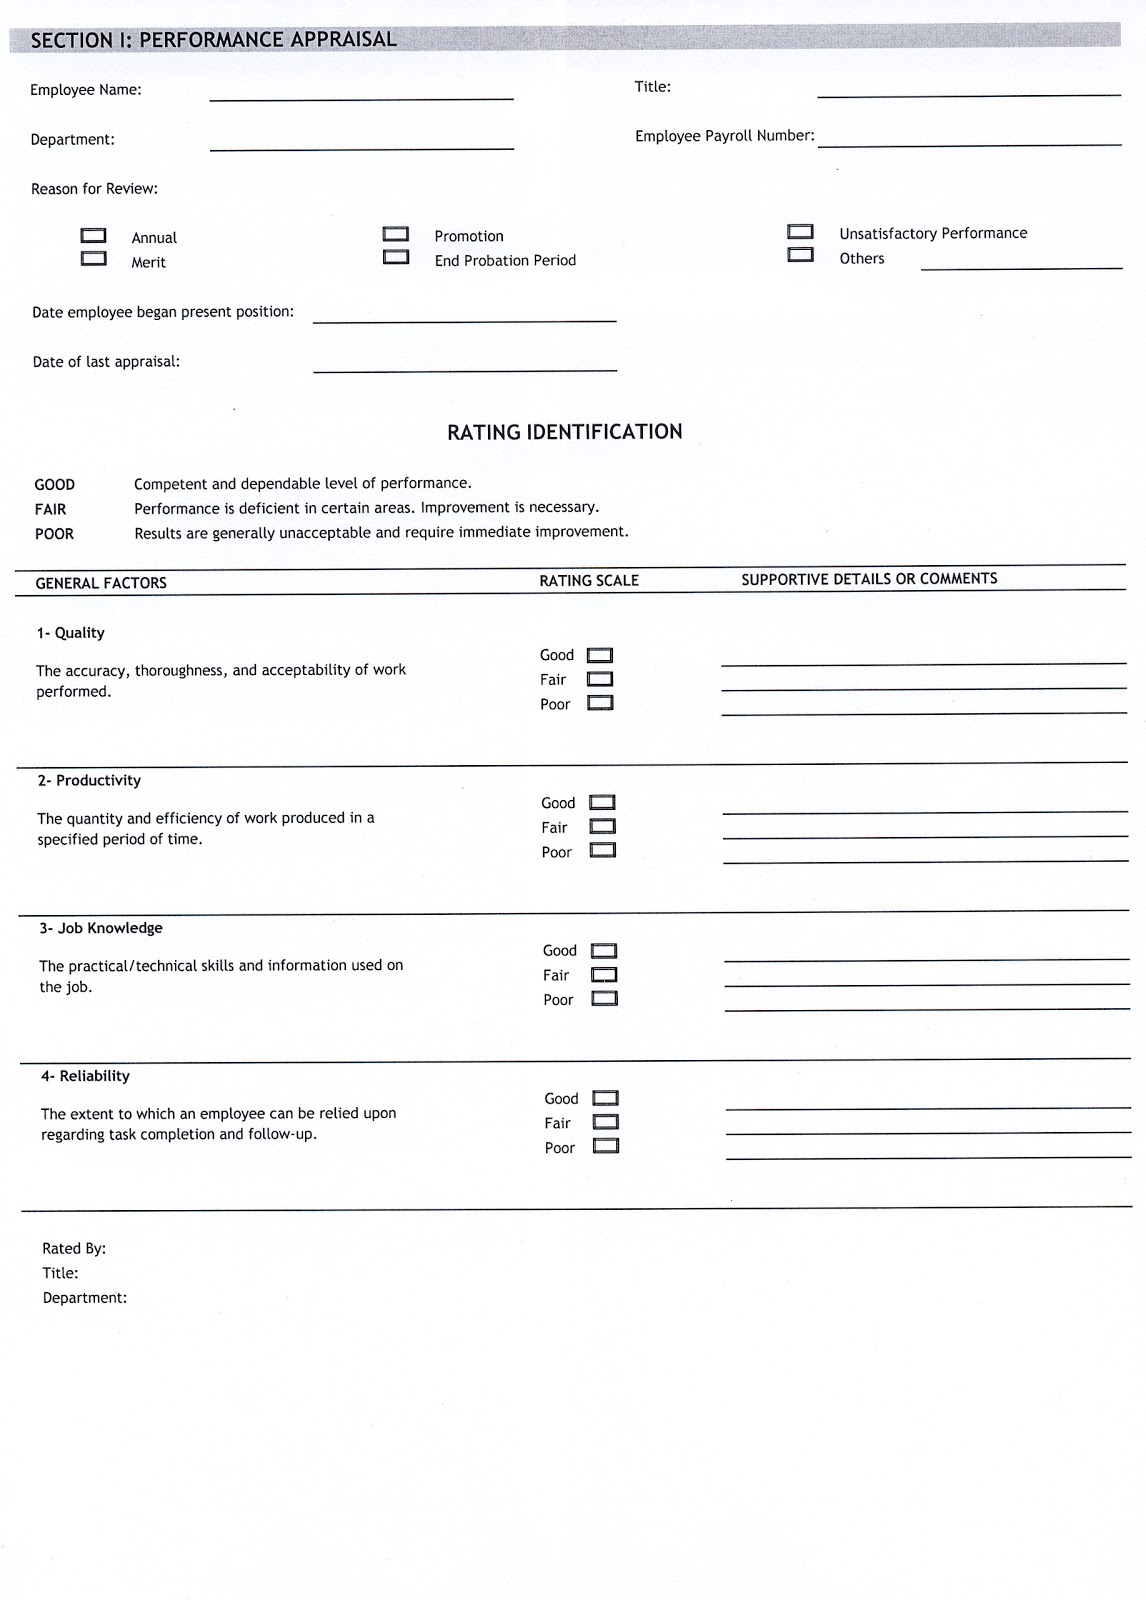 General Knowledge Library: Performance Appraisal Template